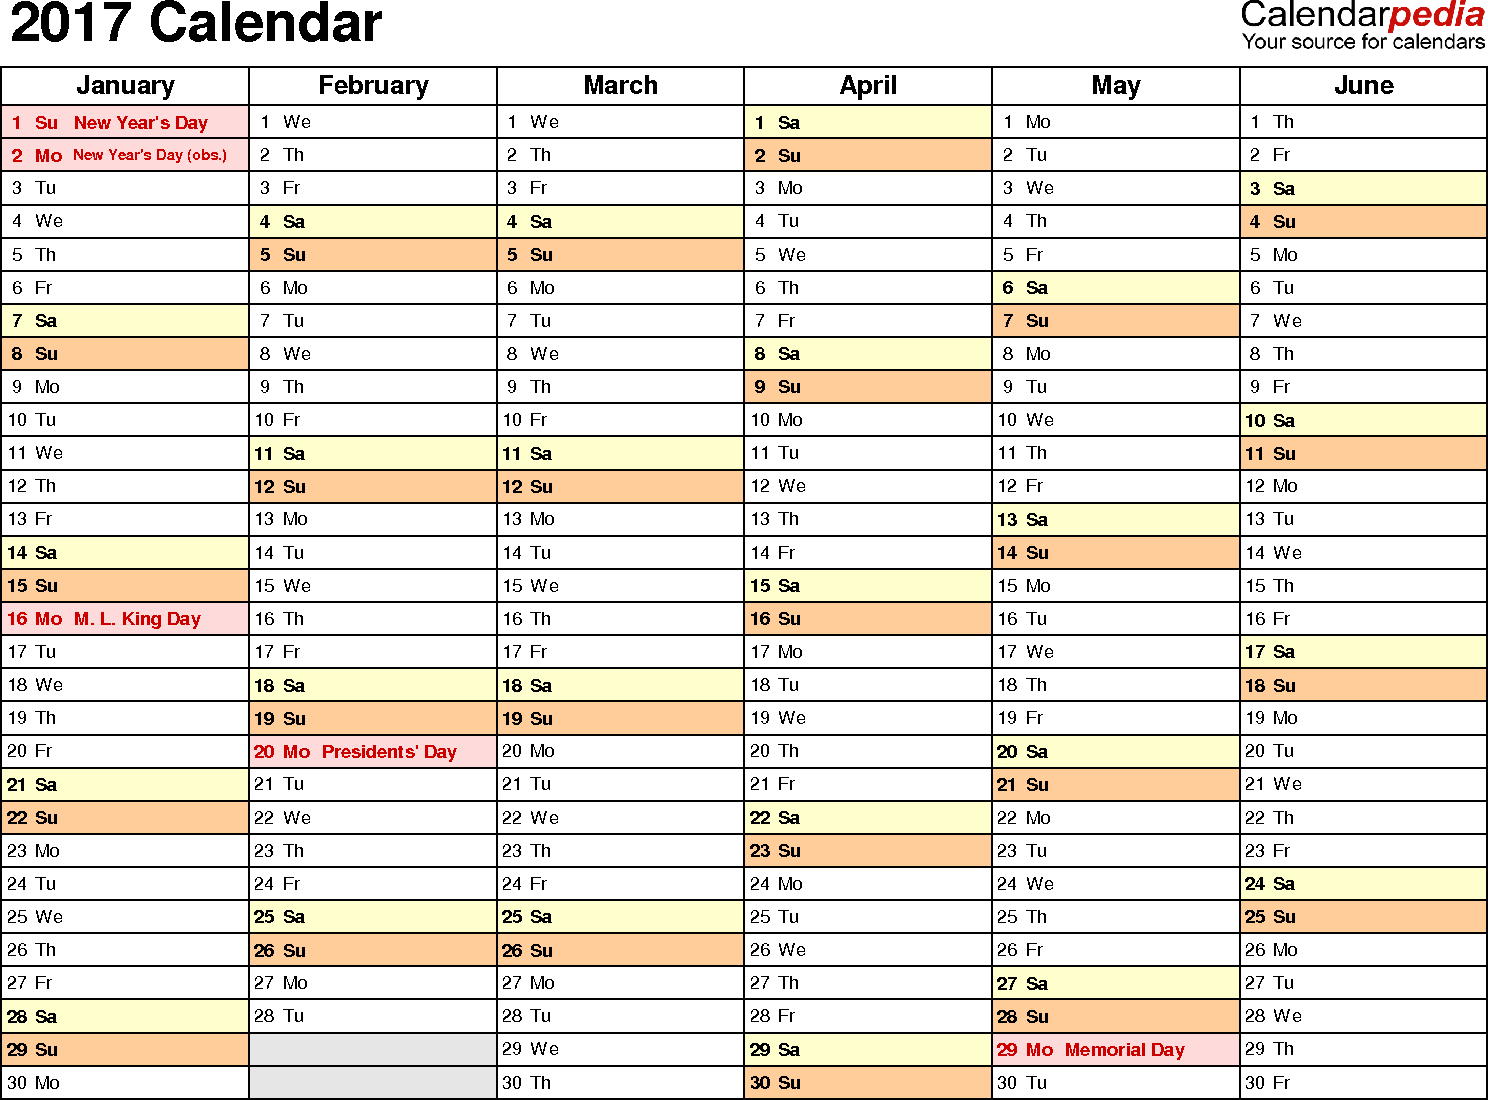 Ediblewildsus  Winning  Calendar  Download  Free Printable Excel Templates Xls With Excellent Template   Calendar For Excel Months Horizontally  Pages Landscape Orientation With Astounding List Of Excel Functions Also How To Add Calendar To Excel In Addition Excel Free Trial And Pmt Function In Excel As Well As Excel Autosave Location Additionally Excel Multiple Lines In One Cell From Calendarpediacom With Ediblewildsus  Excellent  Calendar  Download  Free Printable Excel Templates Xls With Astounding Template   Calendar For Excel Months Horizontally  Pages Landscape Orientation And Winning List Of Excel Functions Also How To Add Calendar To Excel In Addition Excel Free Trial From Calendarpediacom